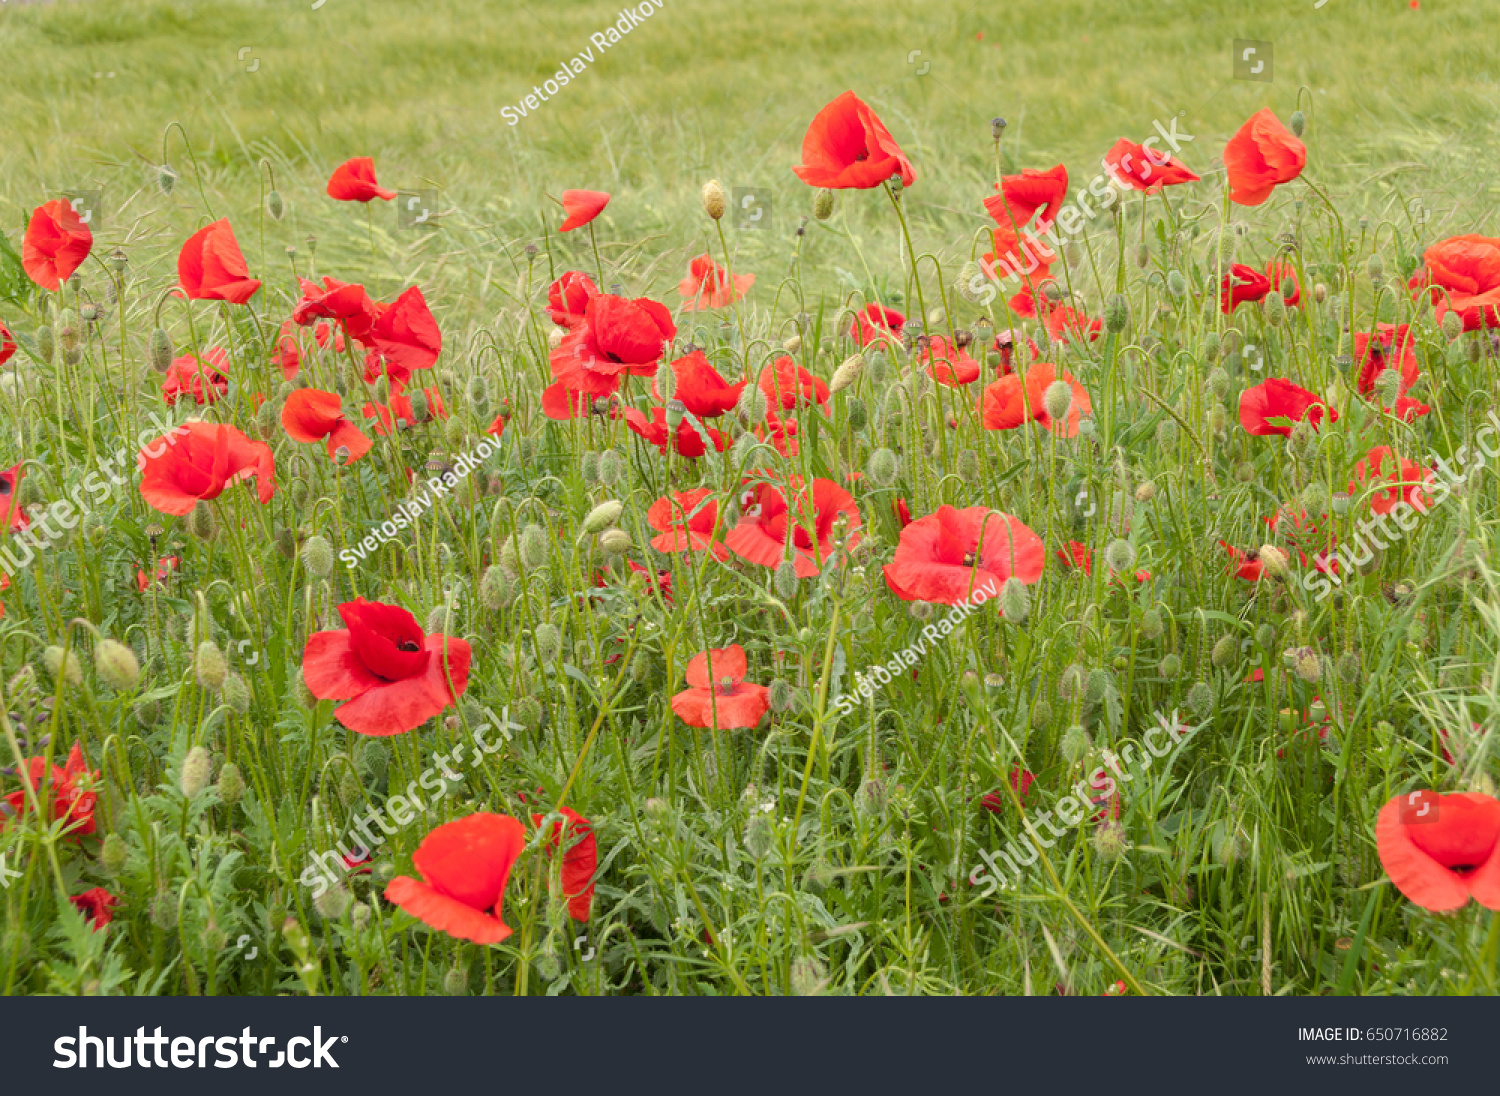 Poppy Flowers Buds And Pods In The Field Ez Canvas